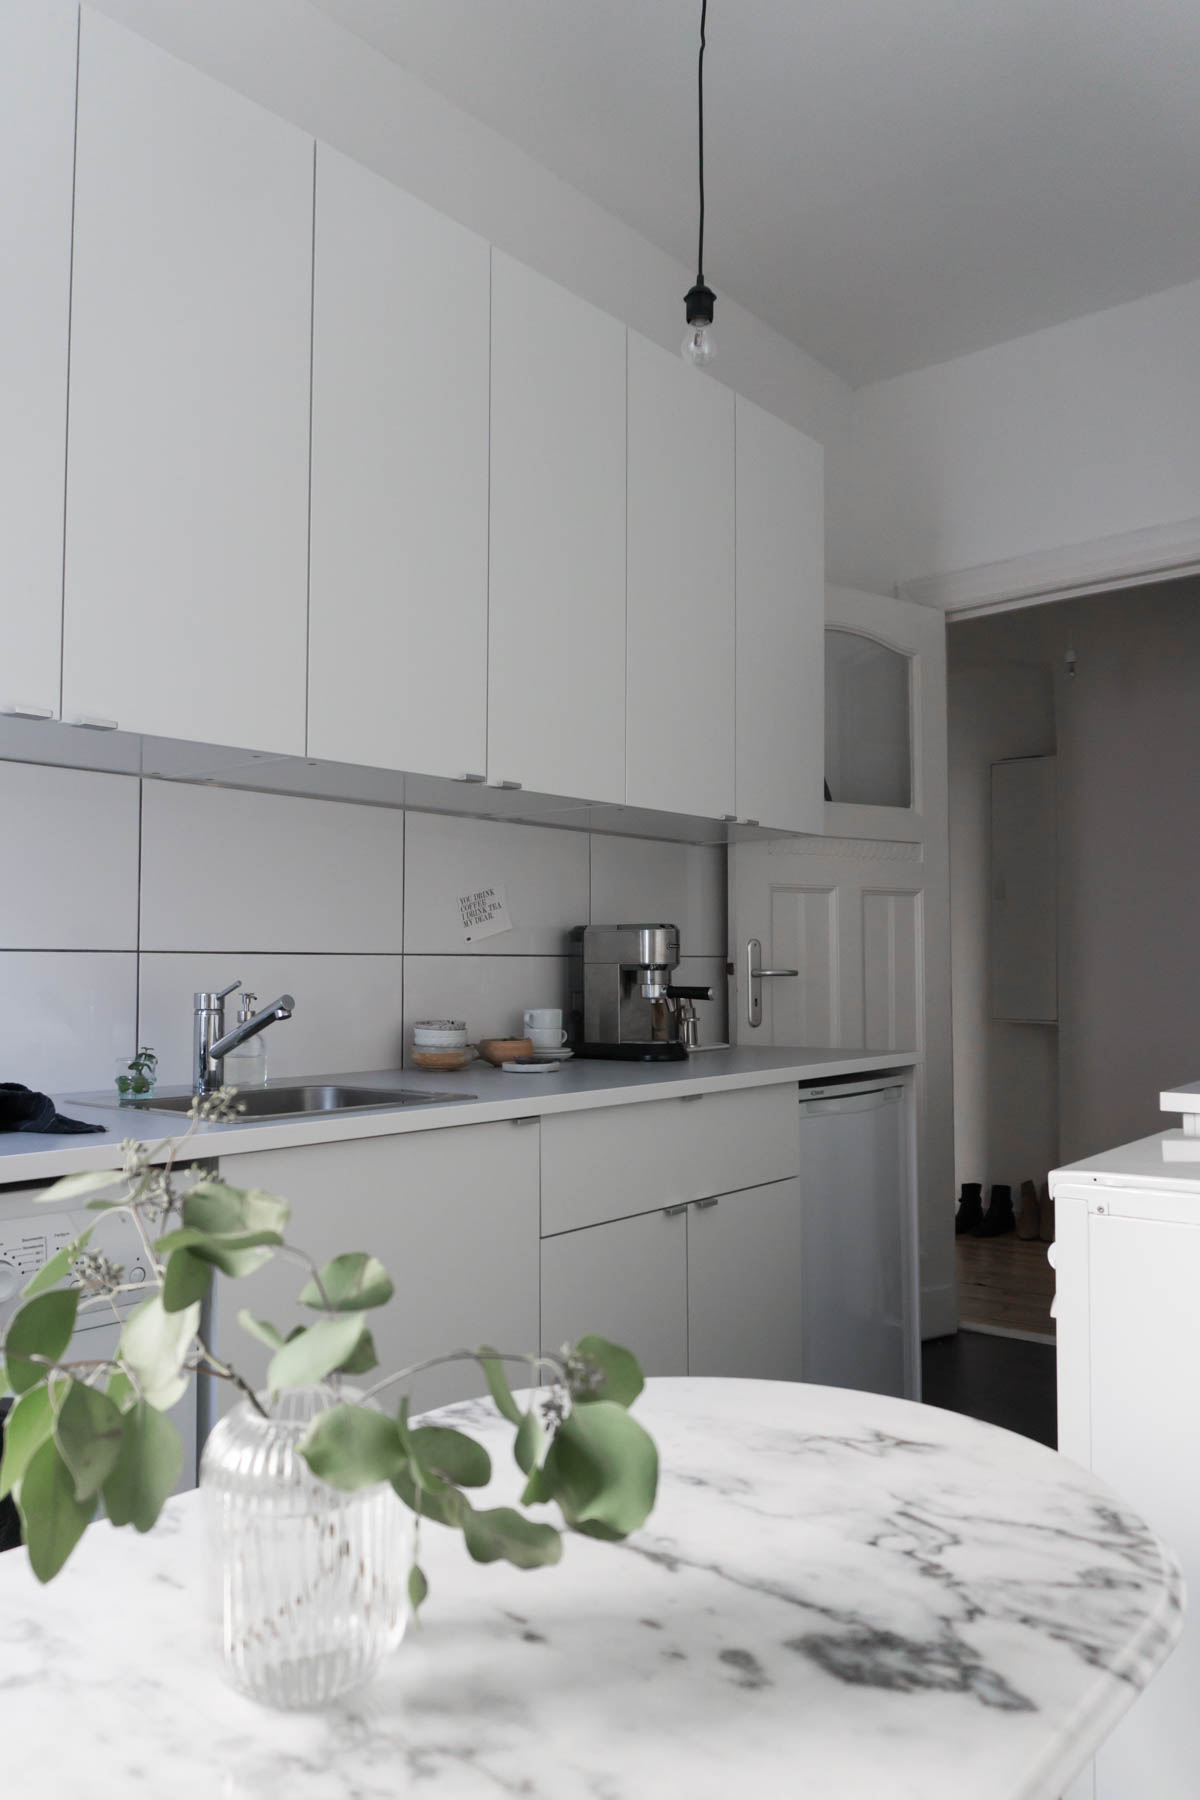 5 Tips for Designing an Ikea Kitchen – RG Daily